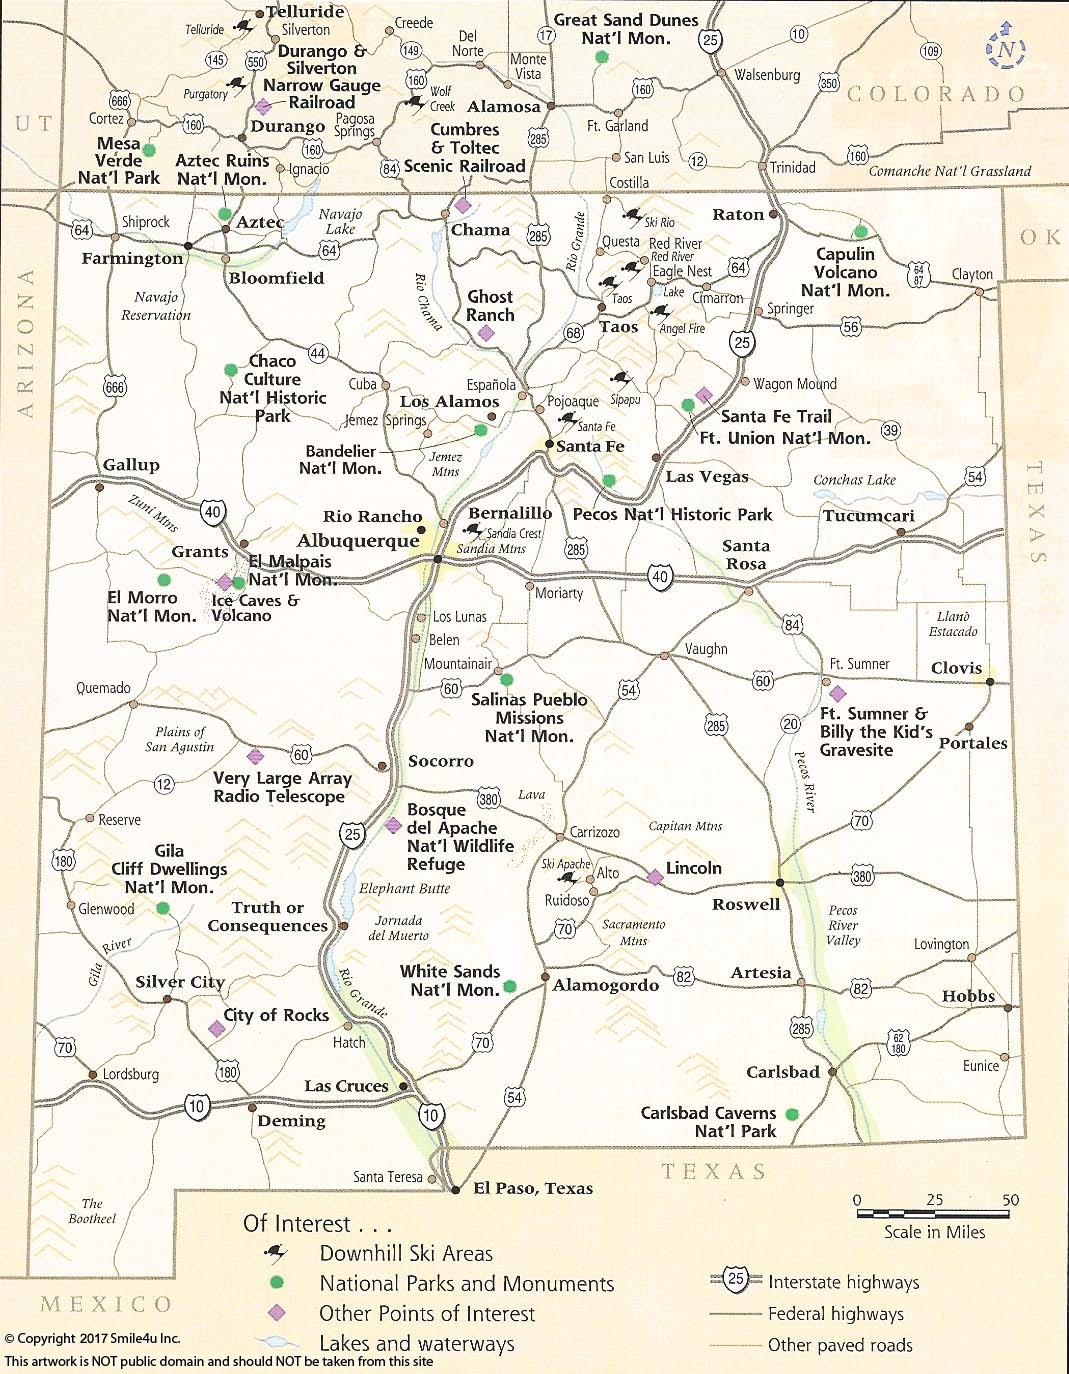 527575_watermarked_New Mexico State Map .jpg